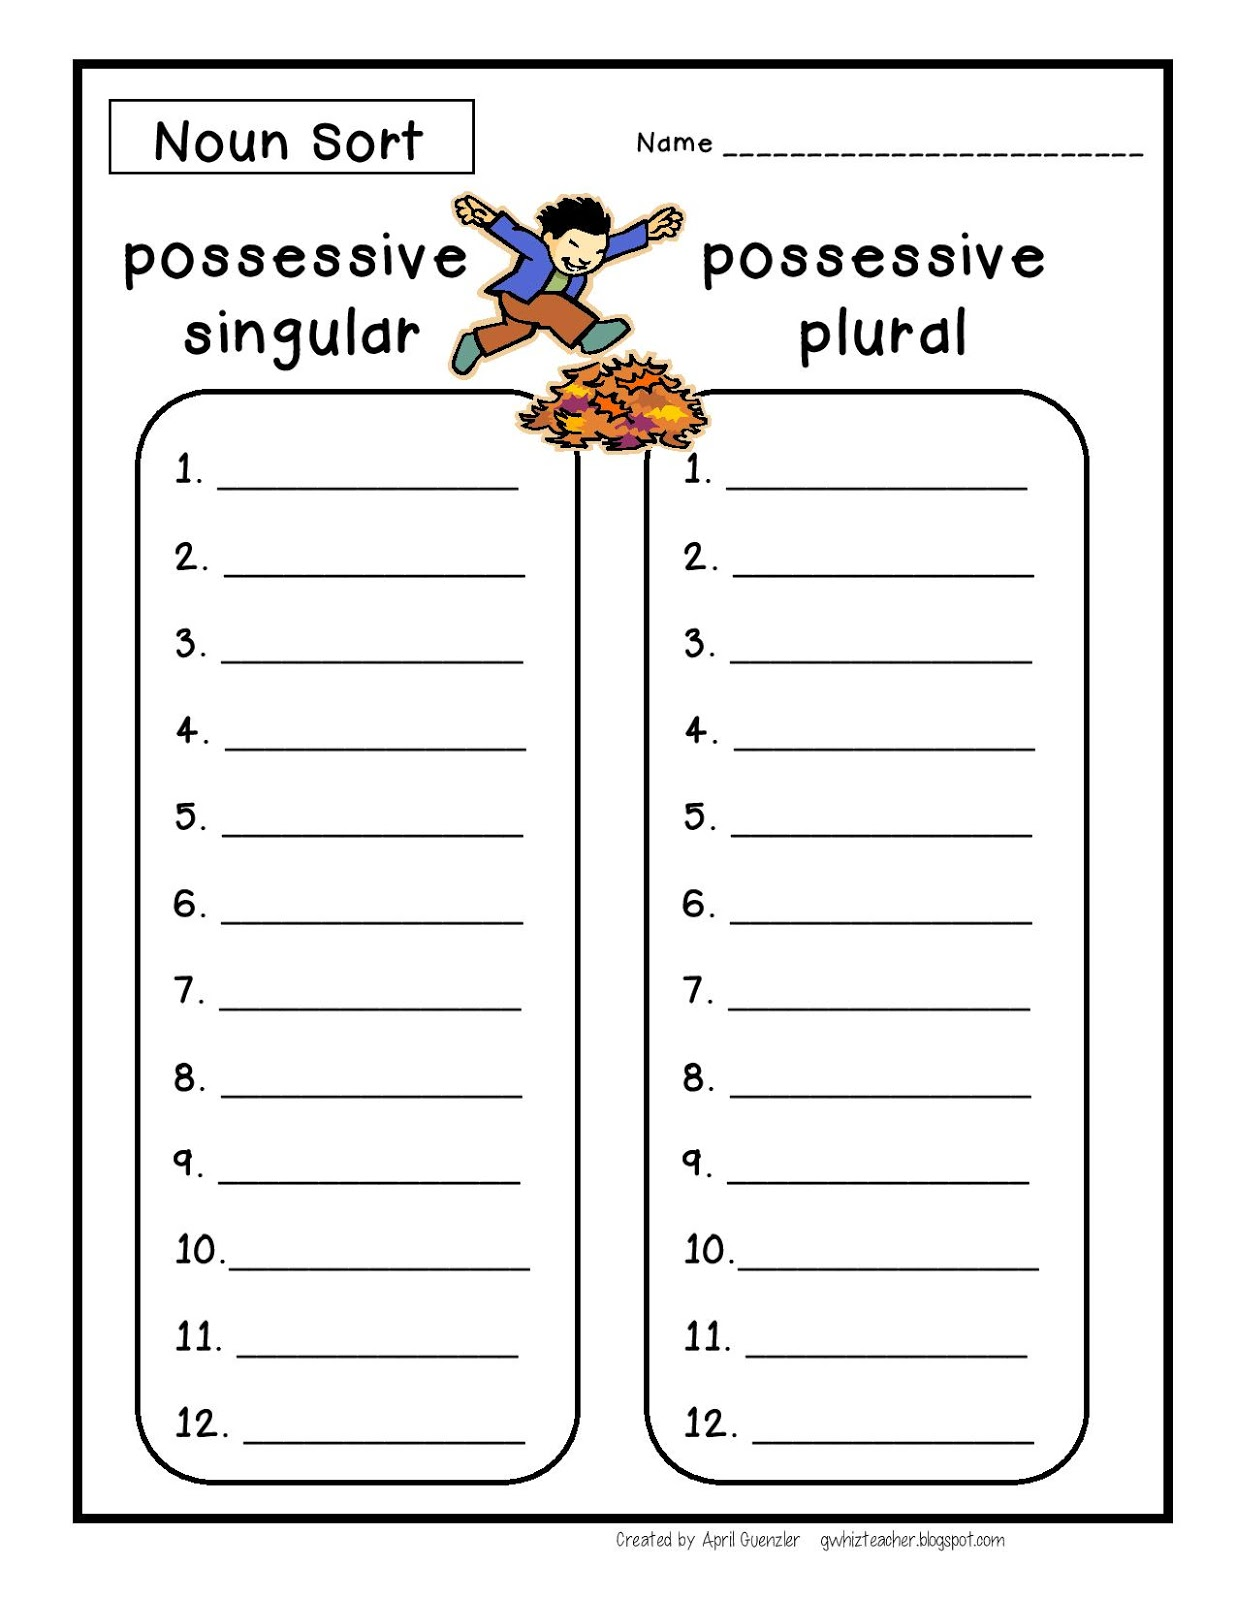 Plural Nouns Worksheets. Latest Practice Forming Plural Nouns With ...